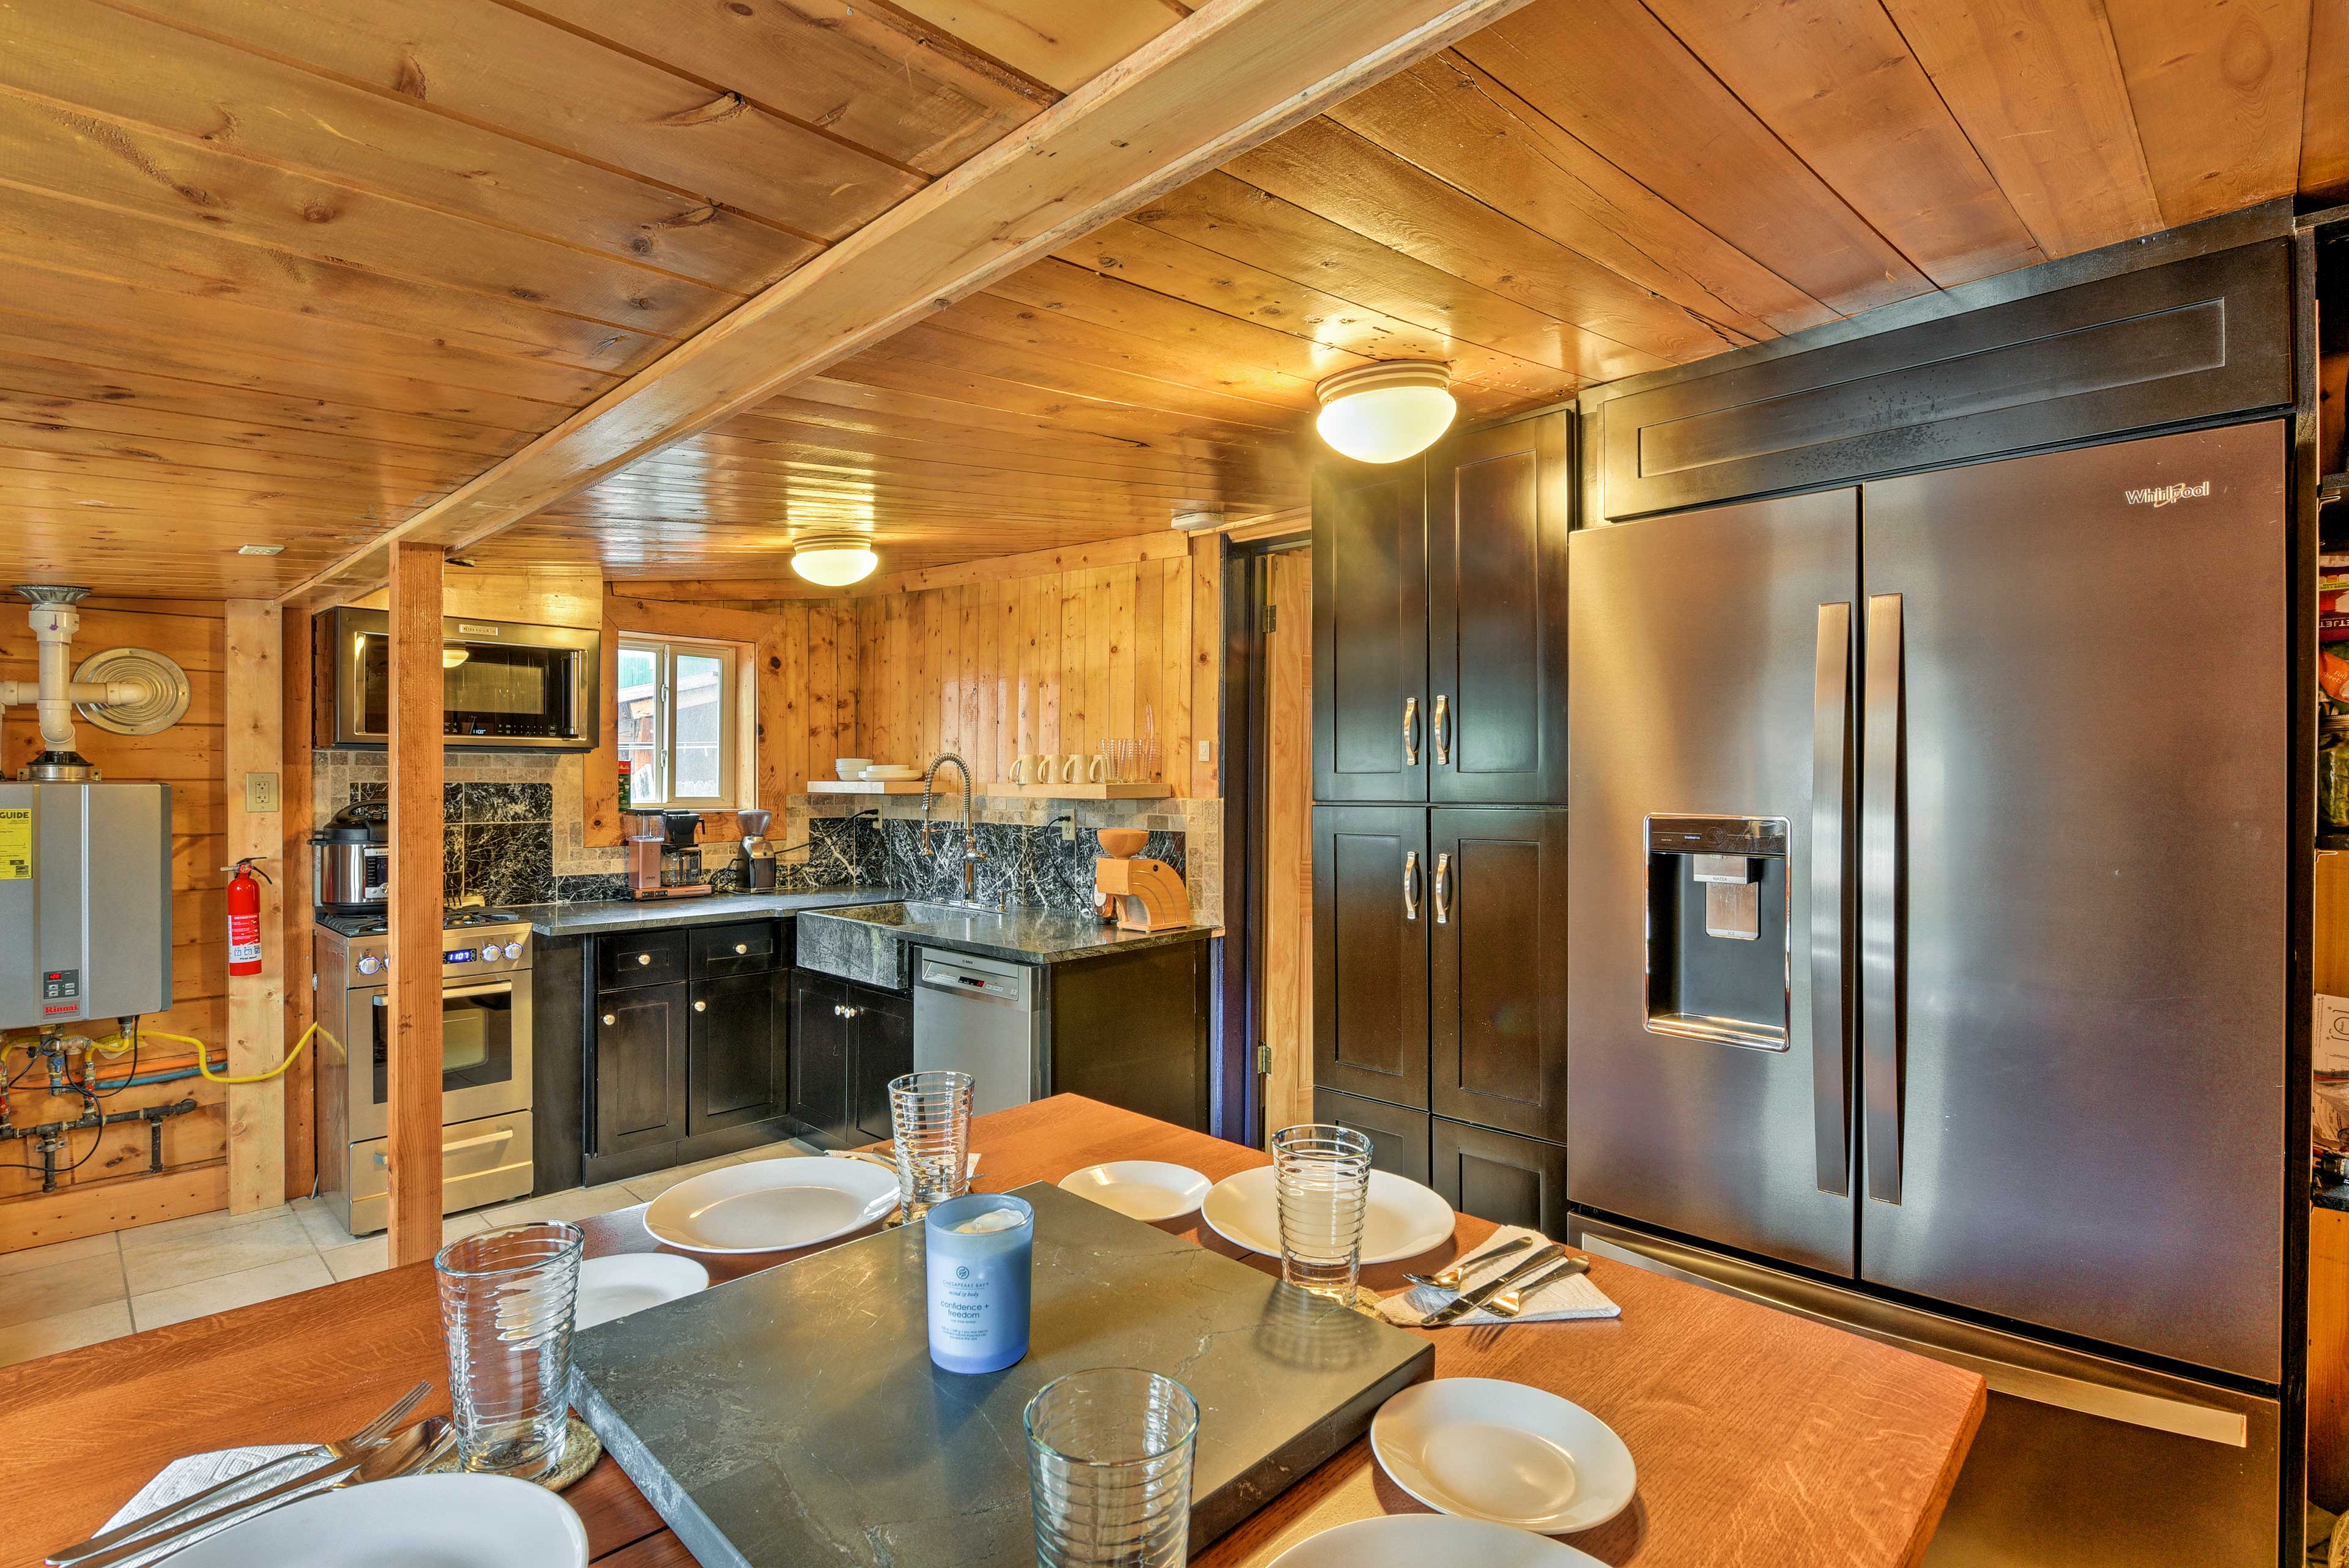 This space offers stainless steel appliances and long countertops.